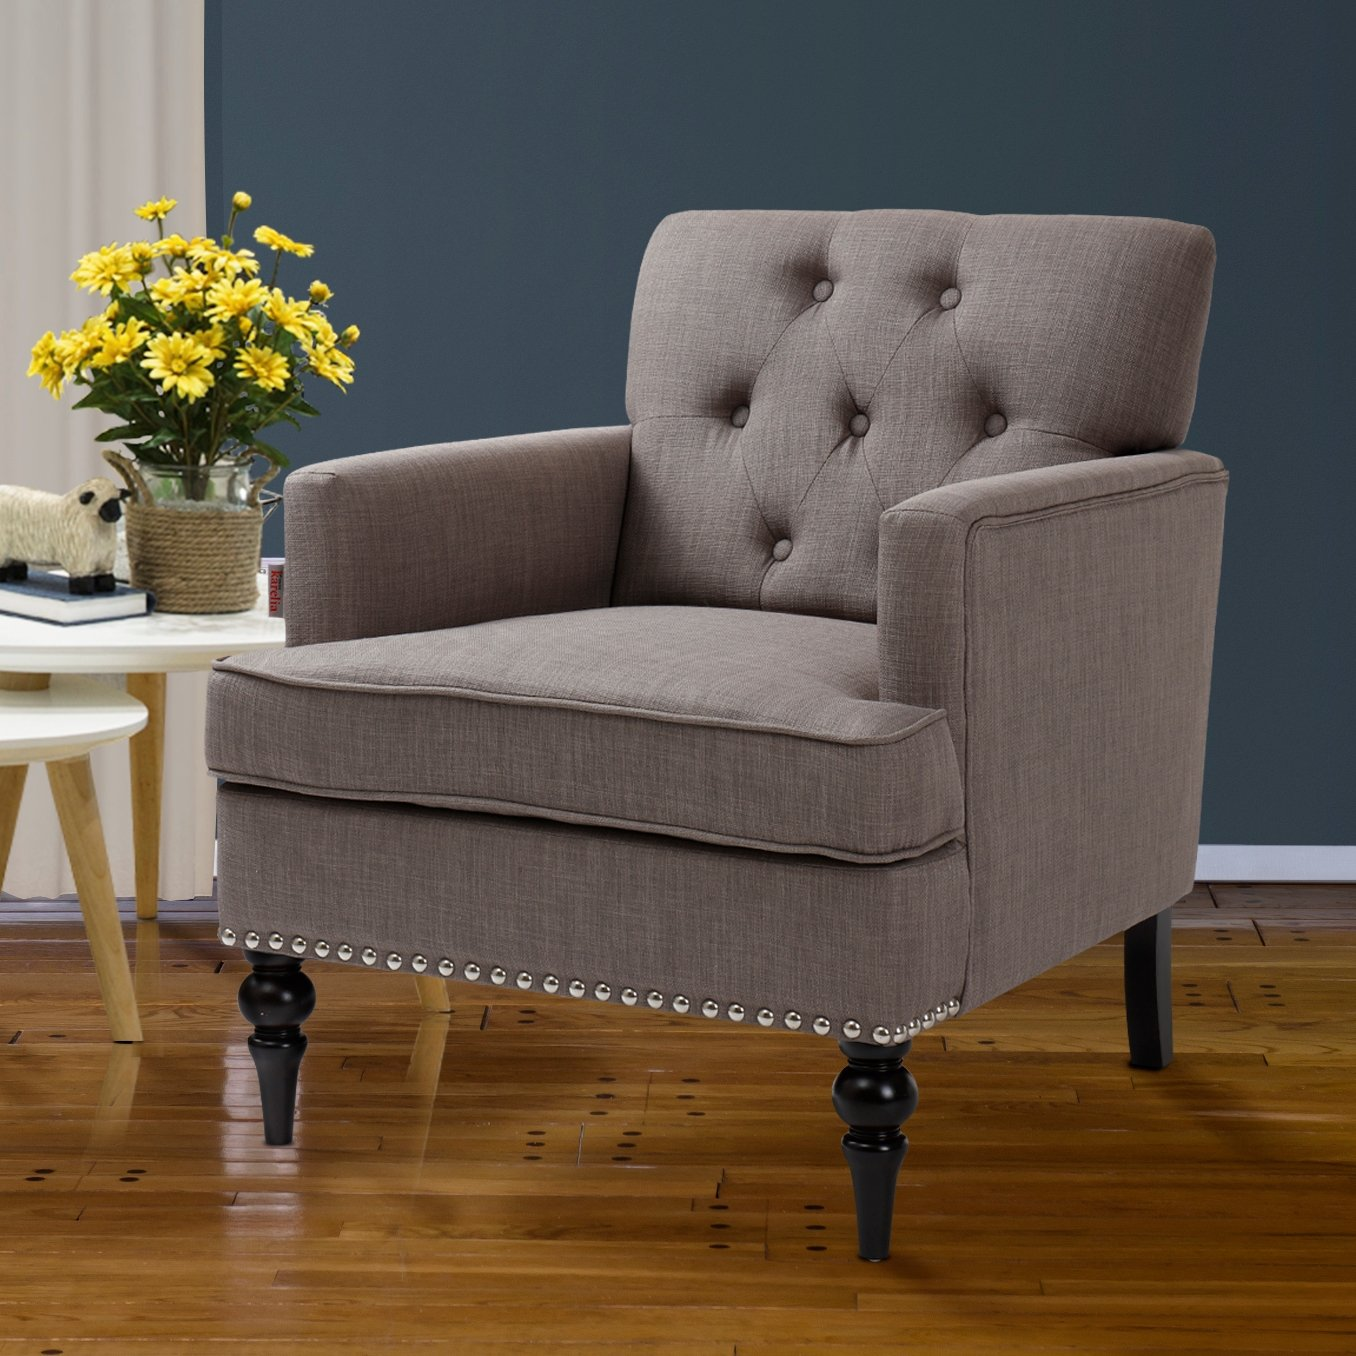 Finnkarelia Grey Accent Chair for Living Room Contemporary Arm Club Chair with Armrest and Solid Wood Leg